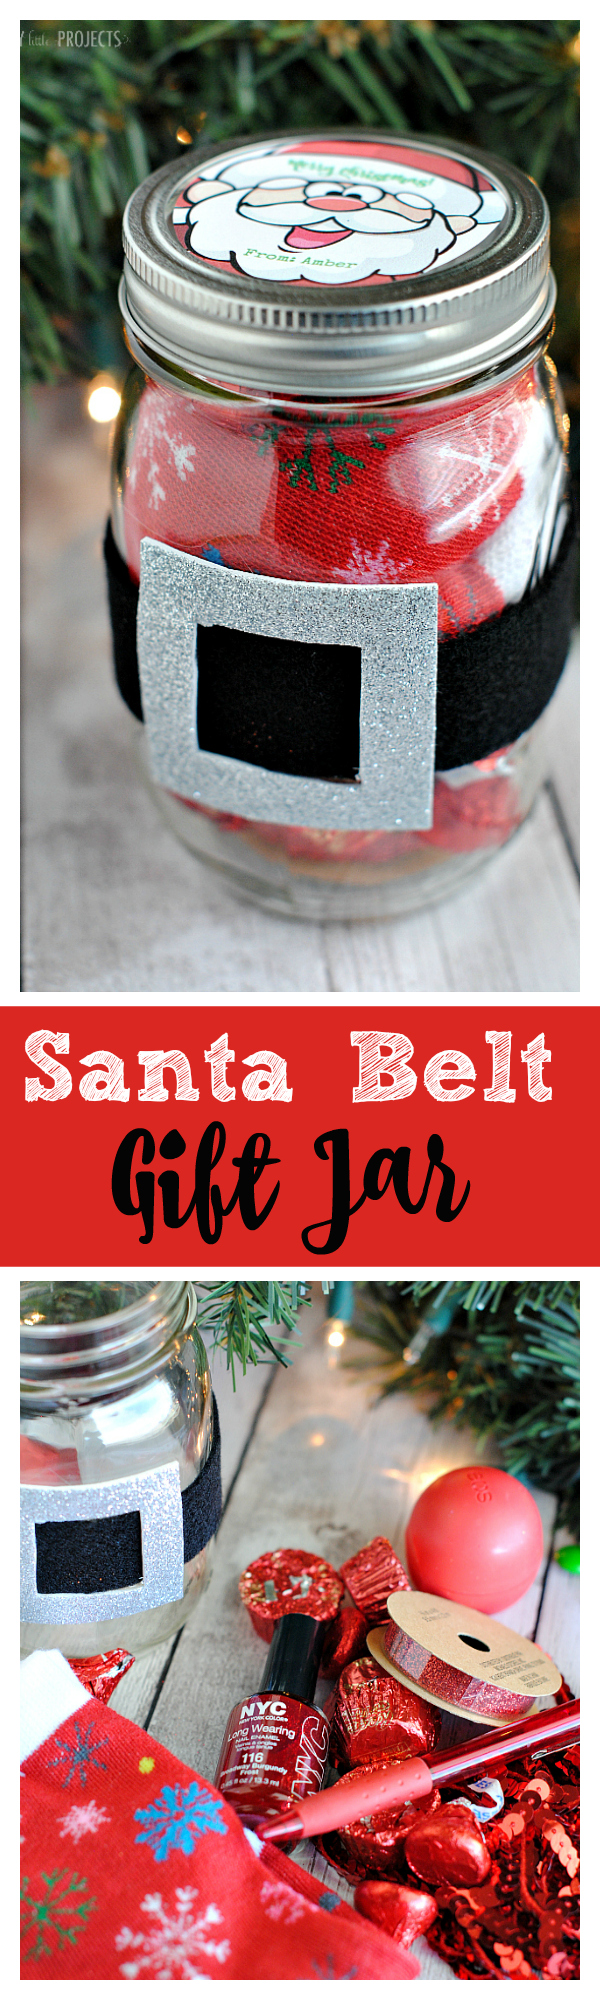 Cute Christmas Gift for Neighbors or Friends-Fill a jar with red items and then add a belt. Print a cute Santa face tag and you're all set with a great holiday gift idea! #christmasgifts